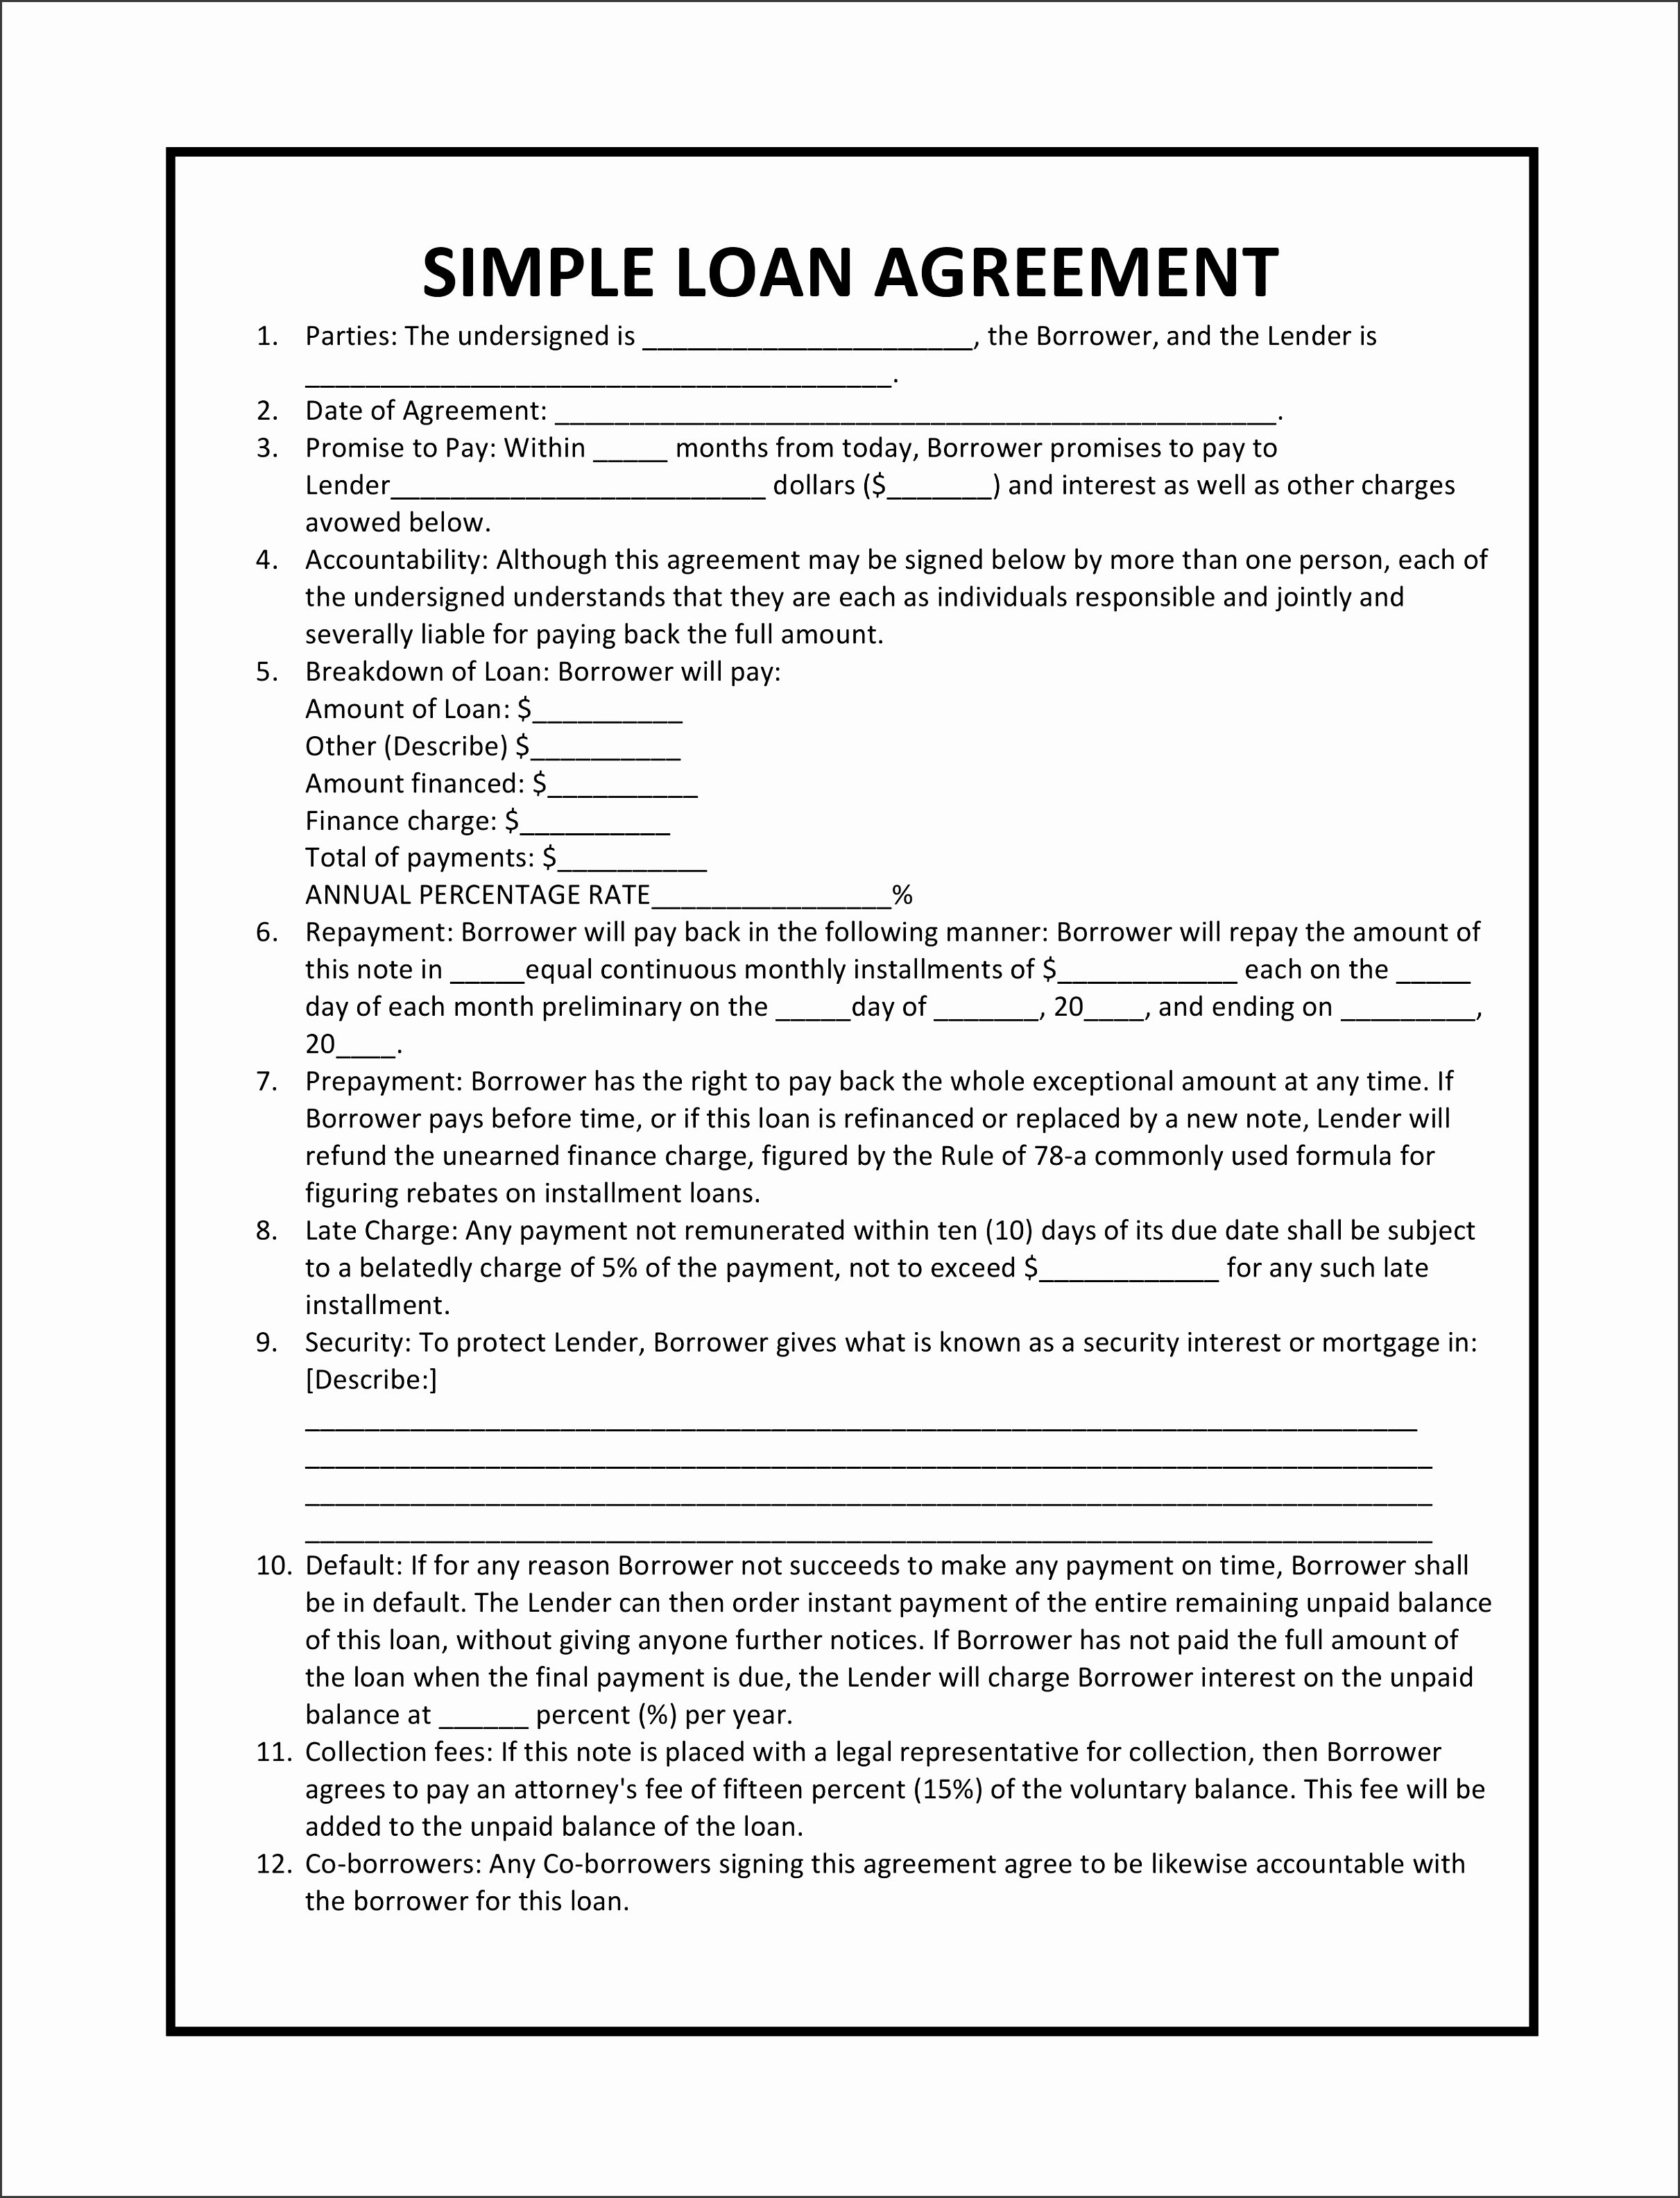 Personal Loan Template Free Inspirational 7 Personal Loan Agreement Template Free Sampletemplatess